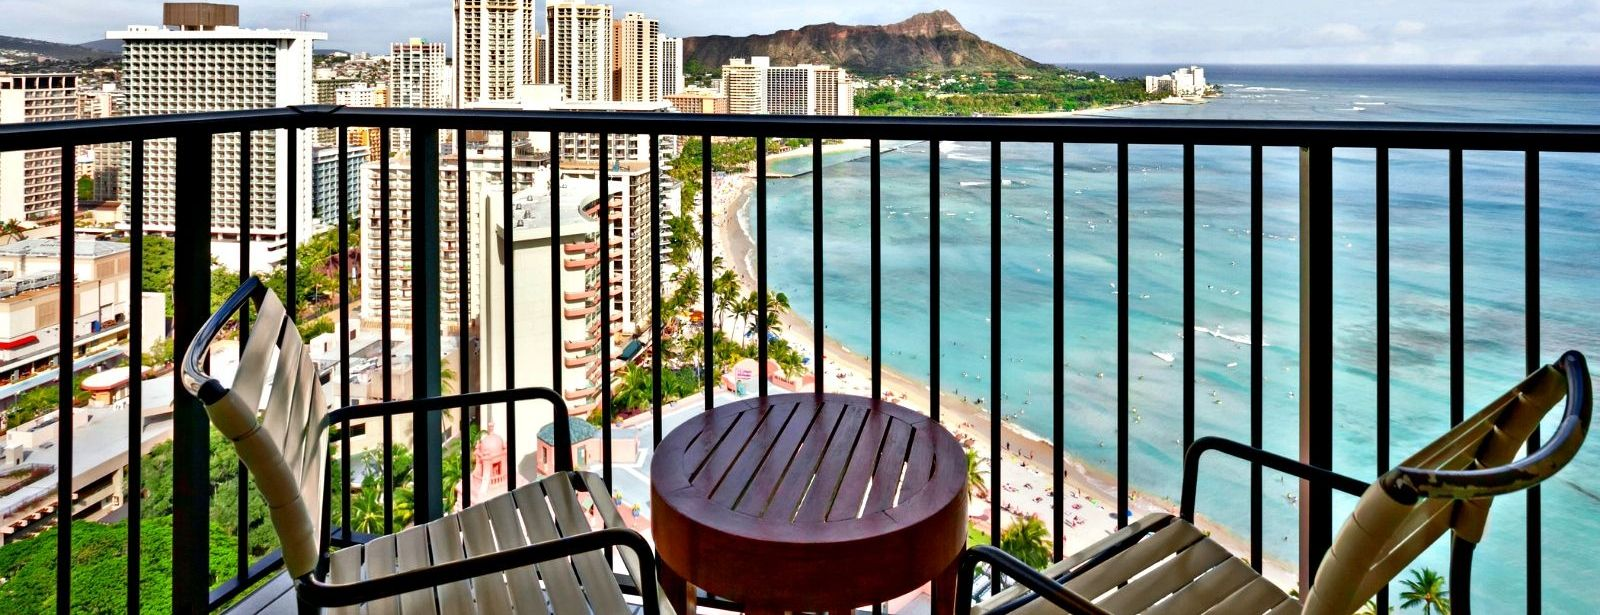 Oahu Hotel Rooms - Luxury Ocean Rooms